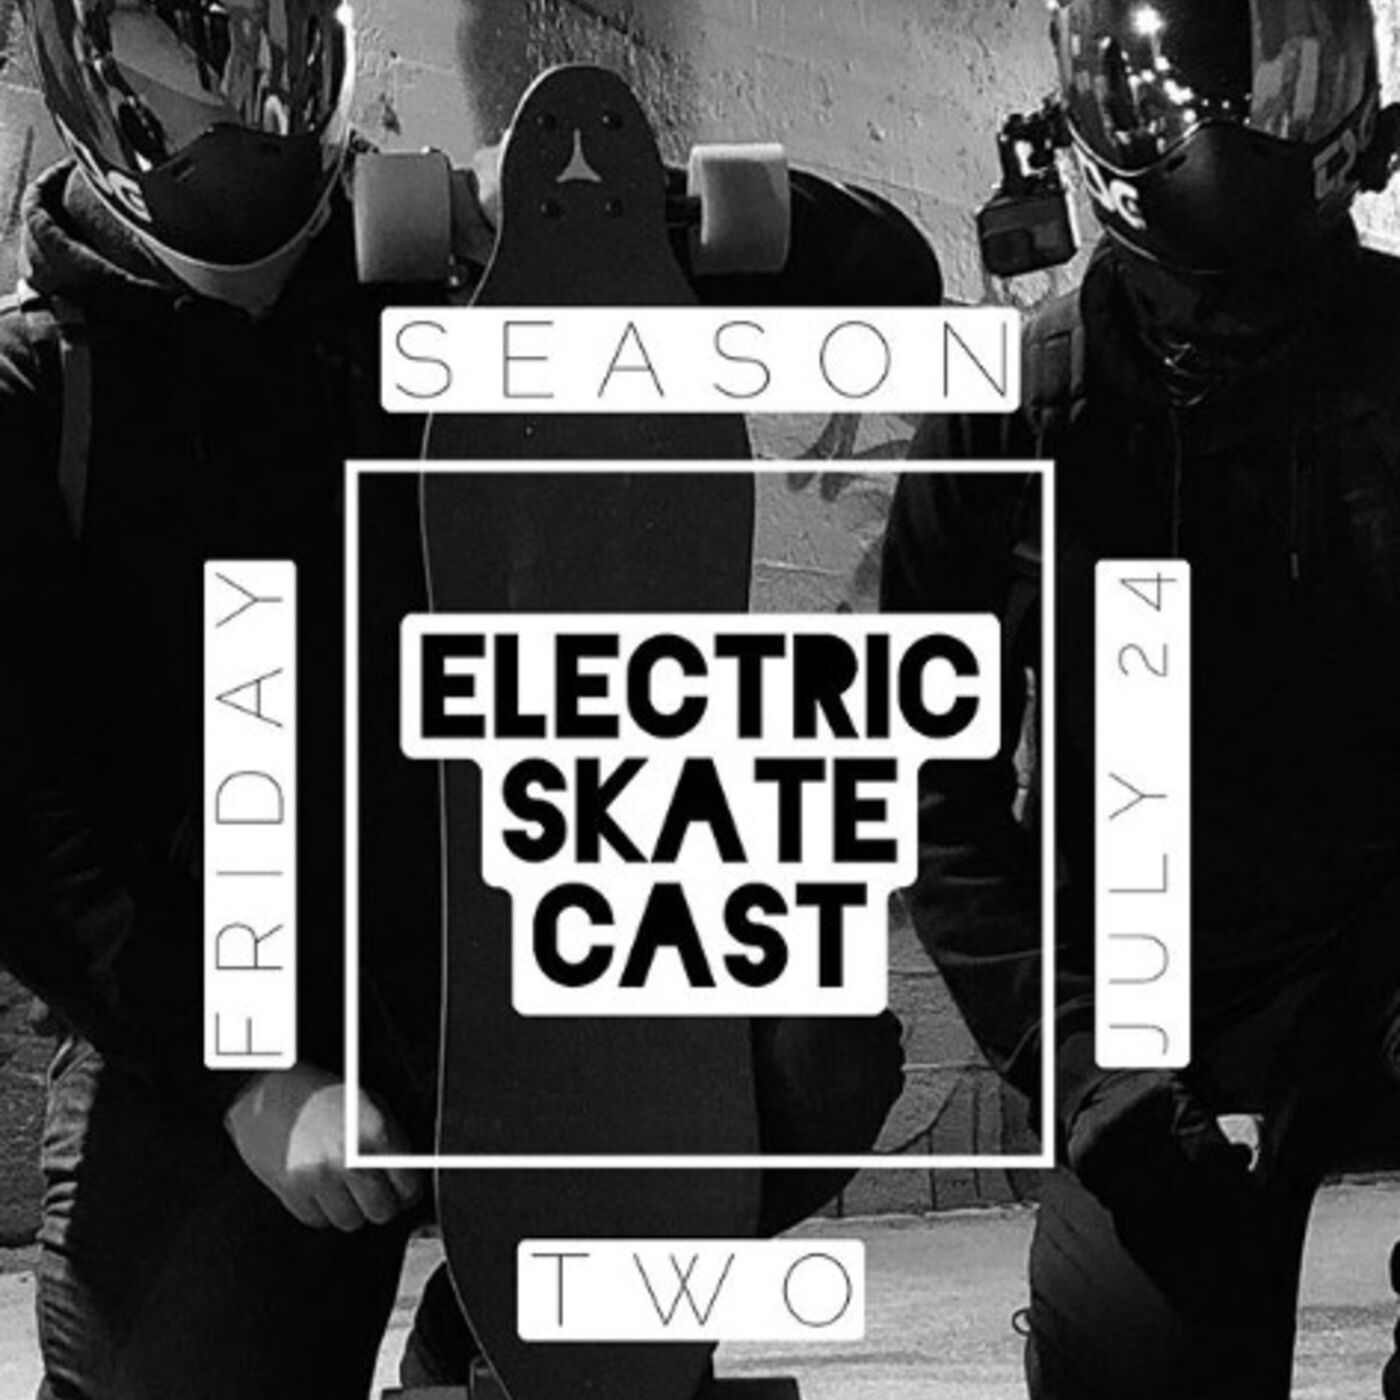 Electric Skate Cast - Episode 11 - Season 2 Premiere, Esk8 Live Show, EUC take over, and is C-Gee the Top Content Creator?